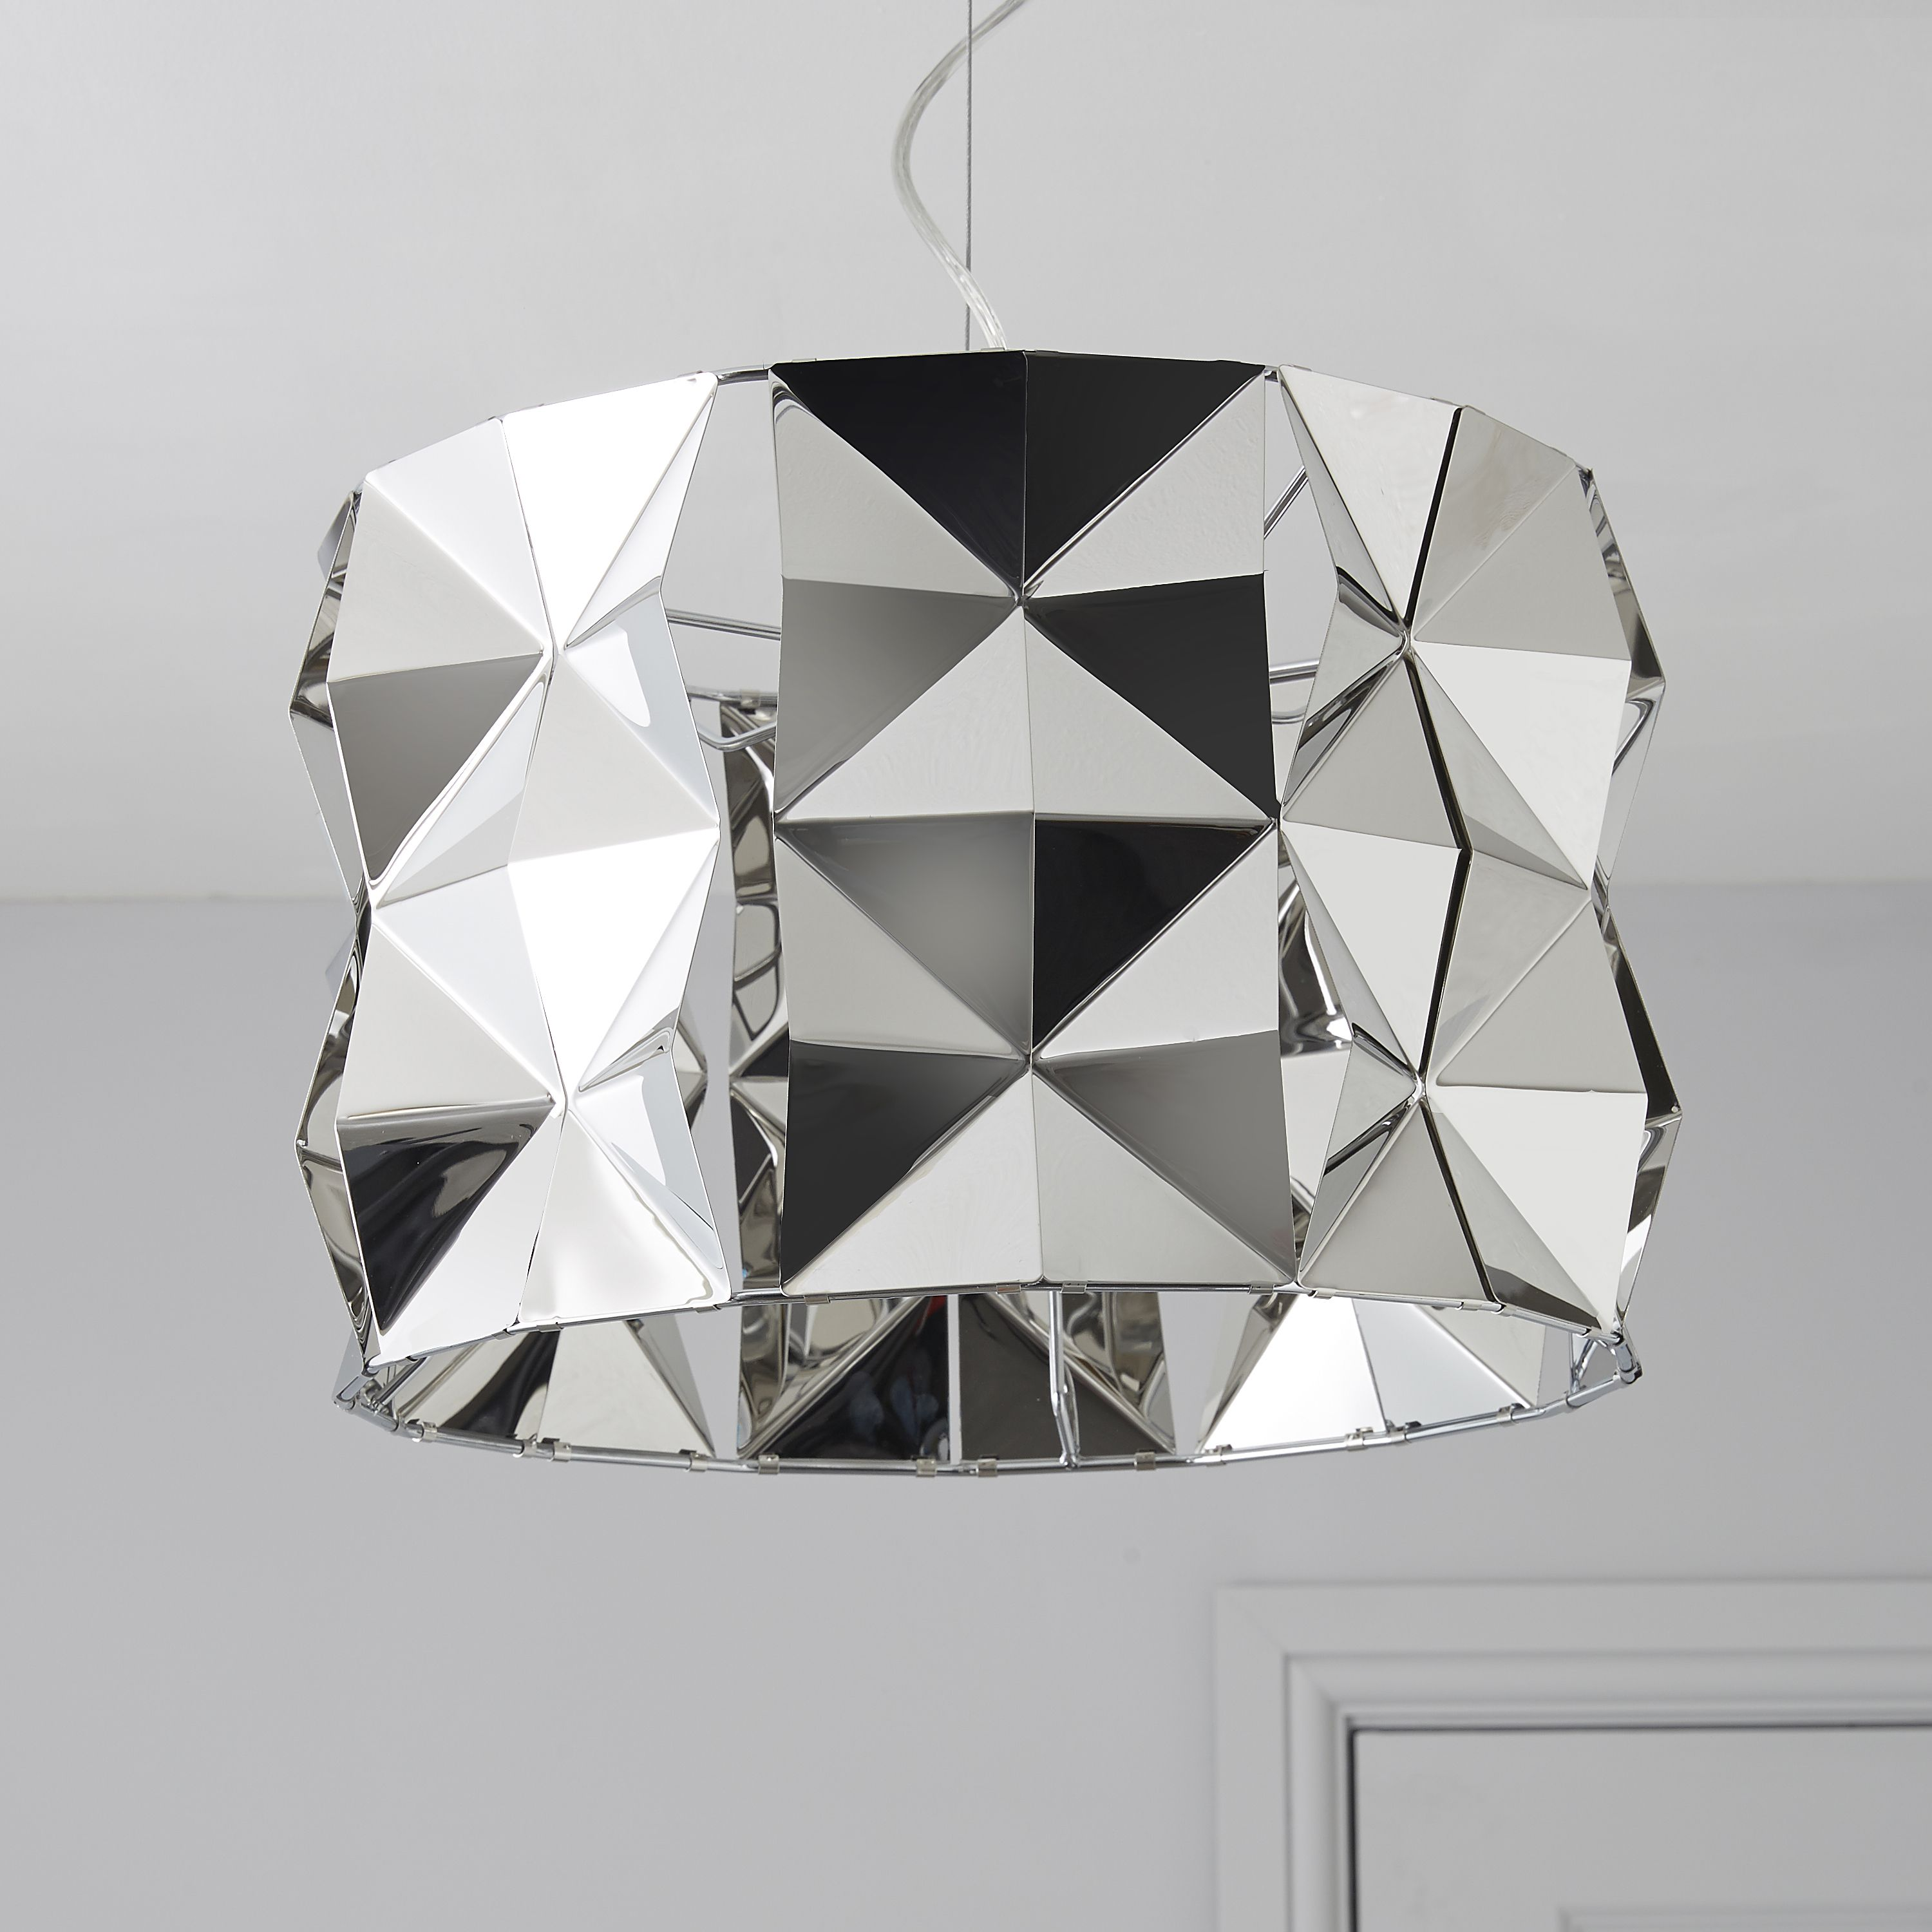 Bathroom ceiling lights b q - Ciara Faceted Silver Chrome Effect Pendant Ceiling Light Departments Diy At B Q